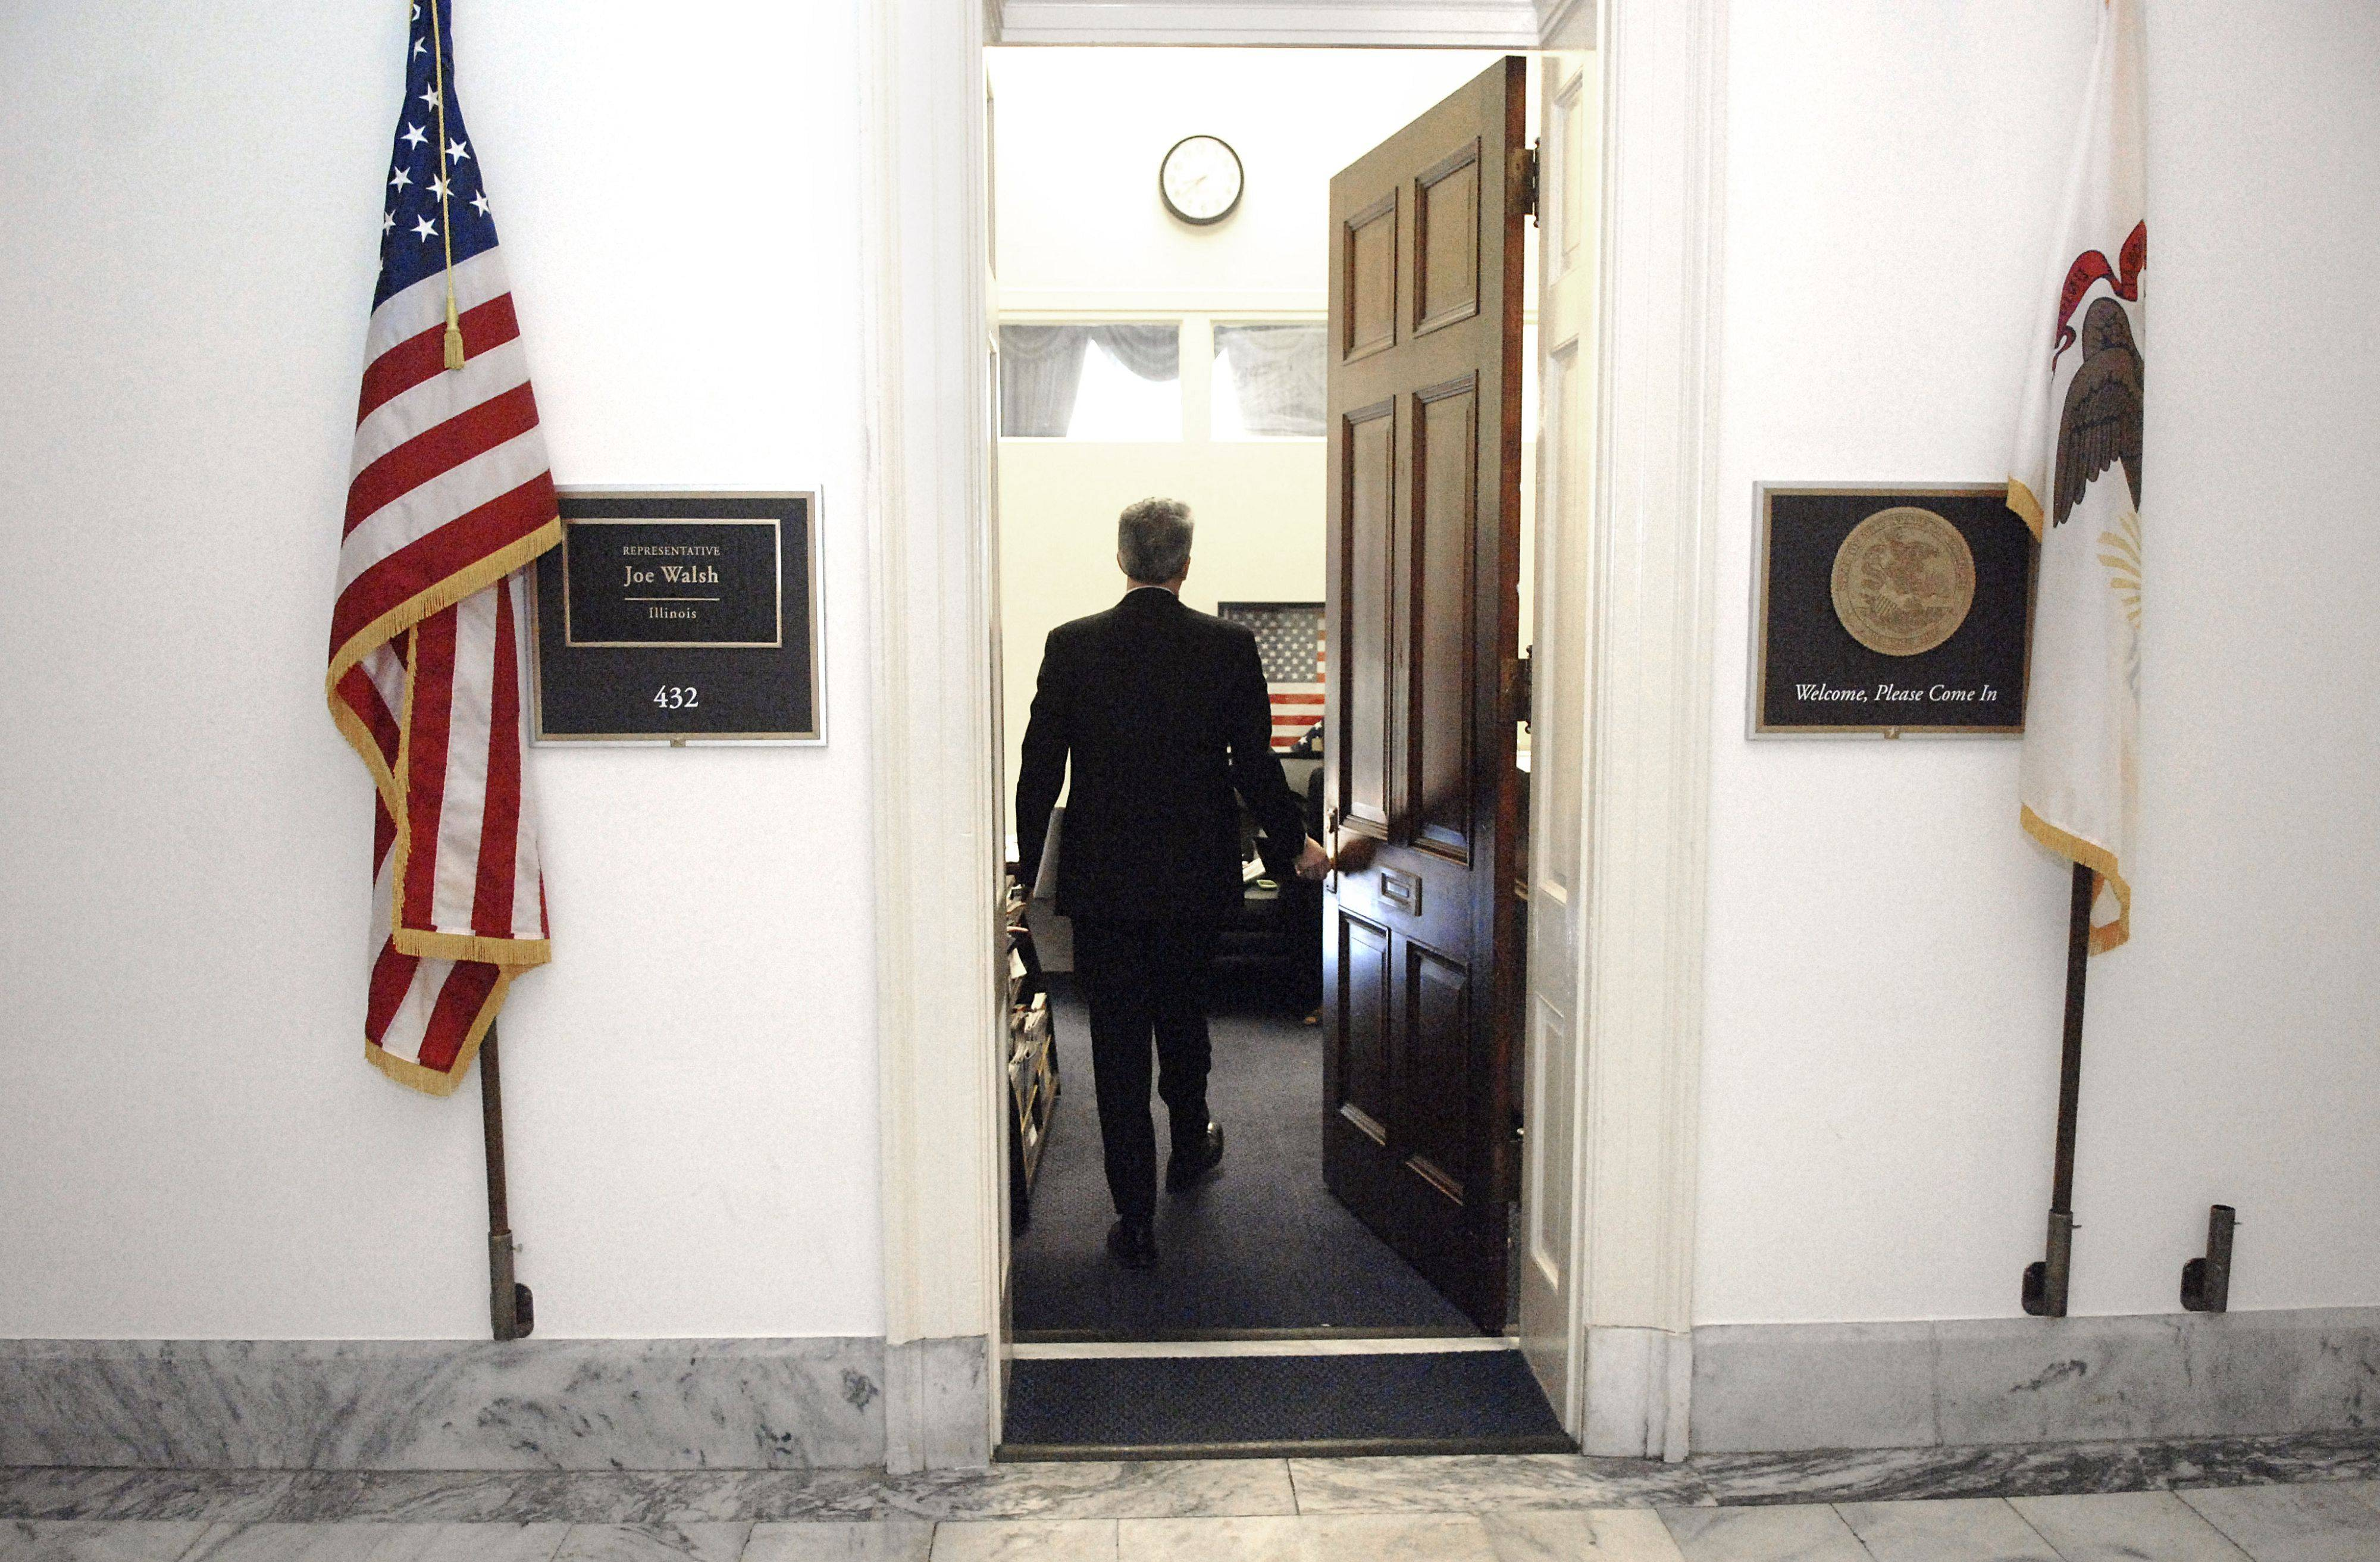 8th District Rep. Joe Walsh returns to his Cannon House office after an early morning GOP breakfast meeting in Washington D.C.